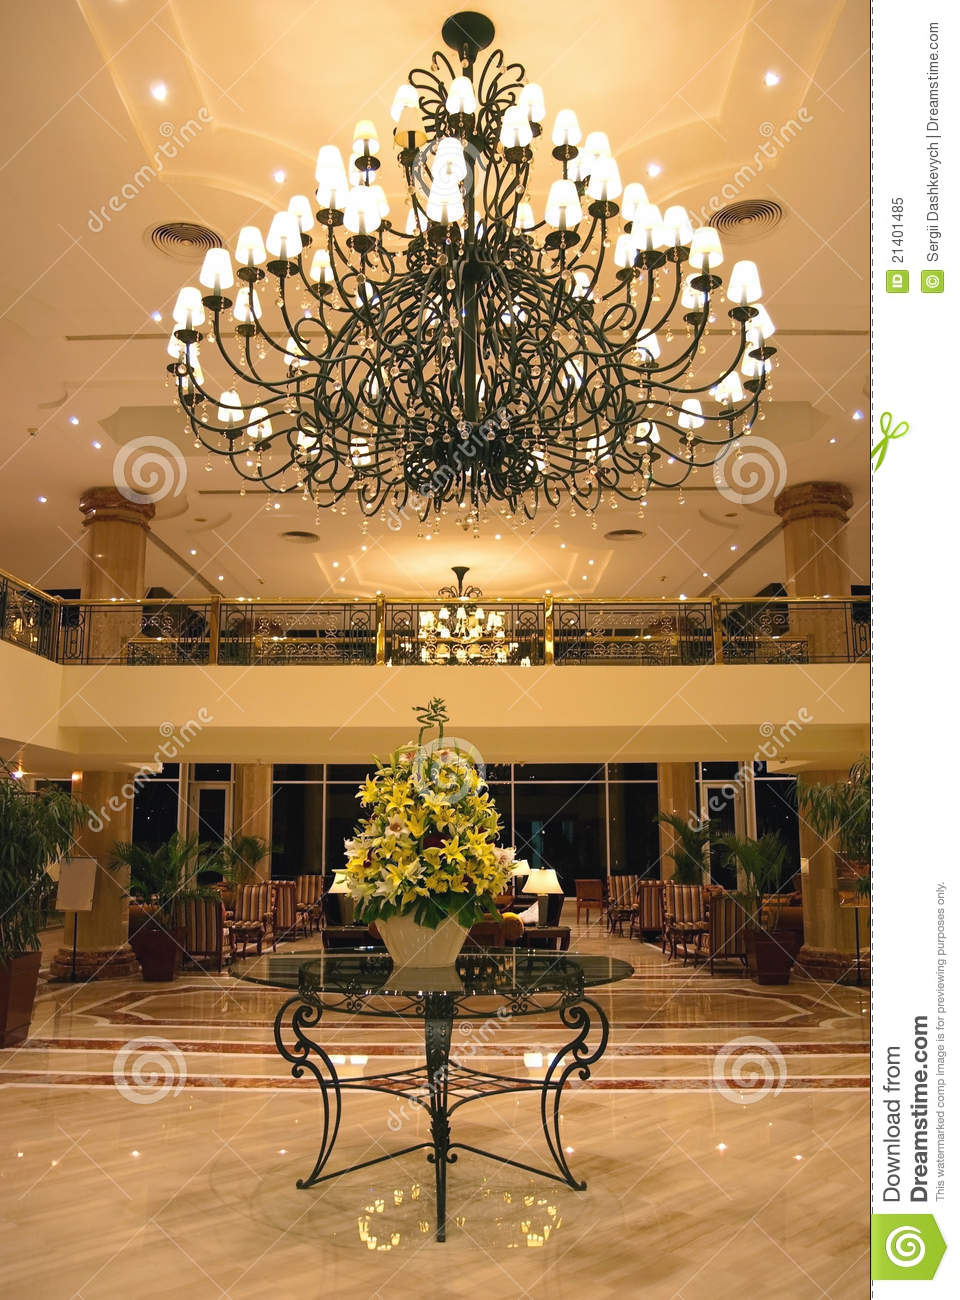 Hotel Foyer Images : Hotel foyer stock image of elegance lobby